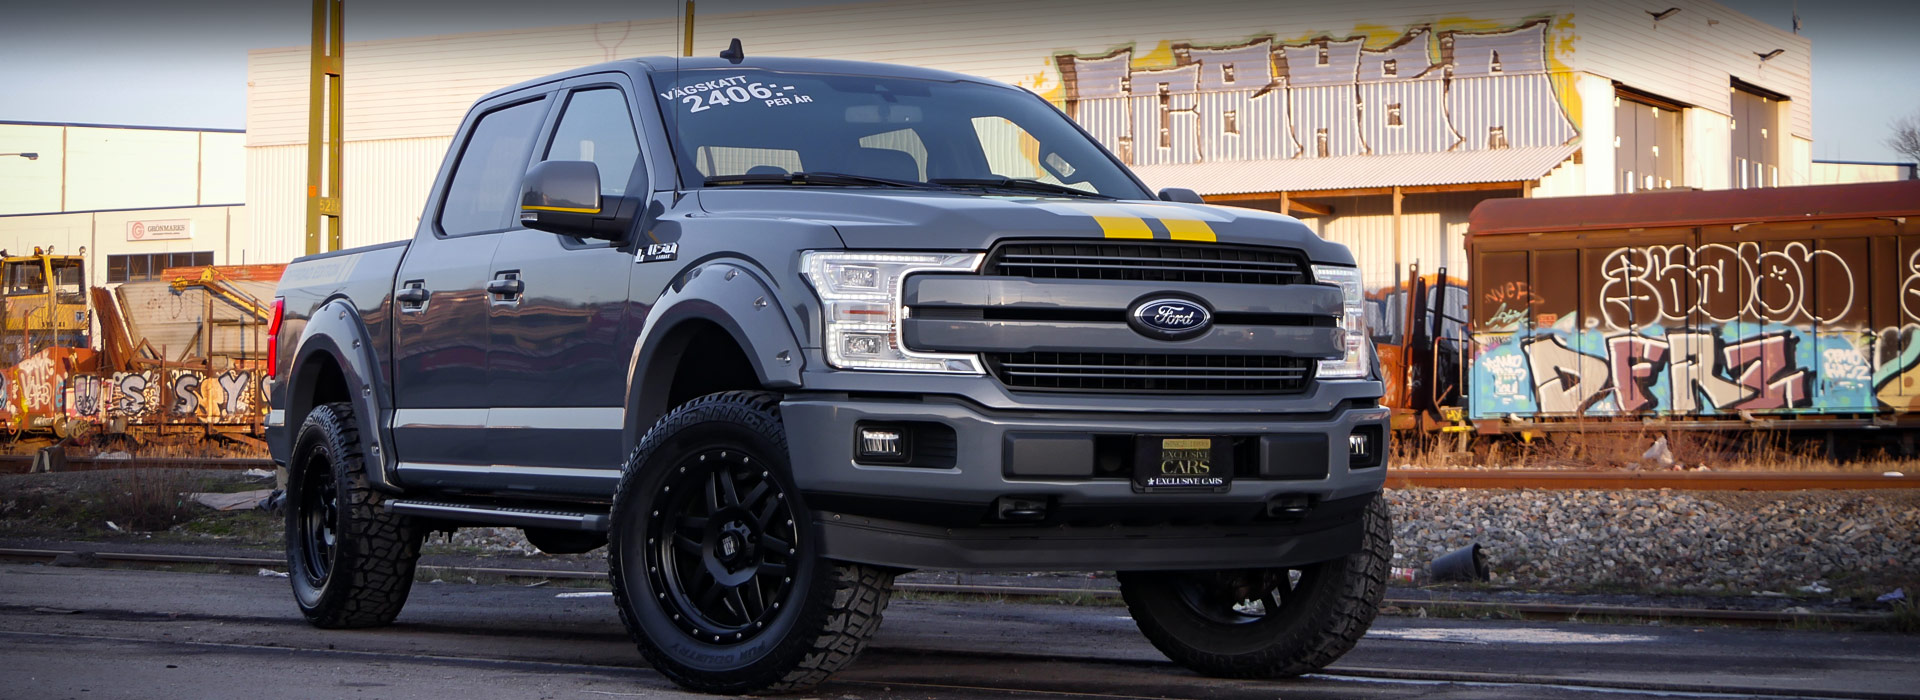 Ford F-150 Offroad Edition